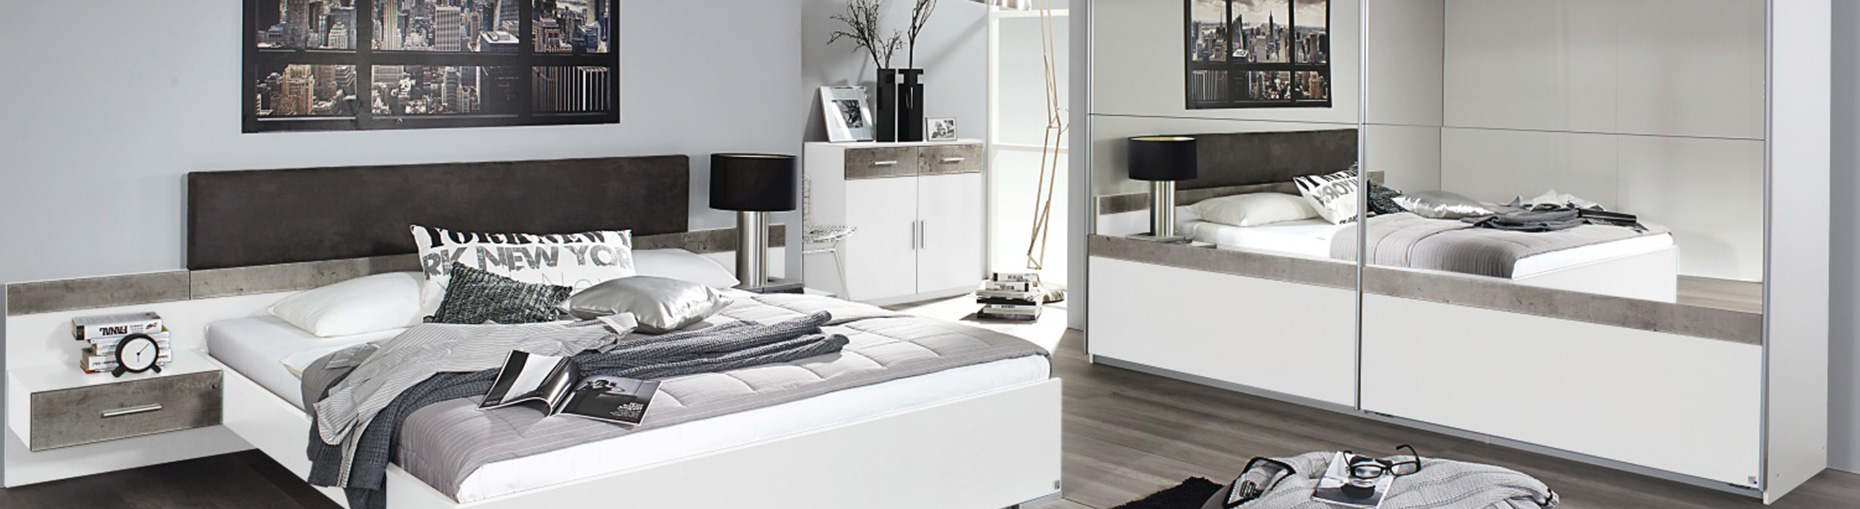 Athens Bedroom Collection at Forrest Furnishing